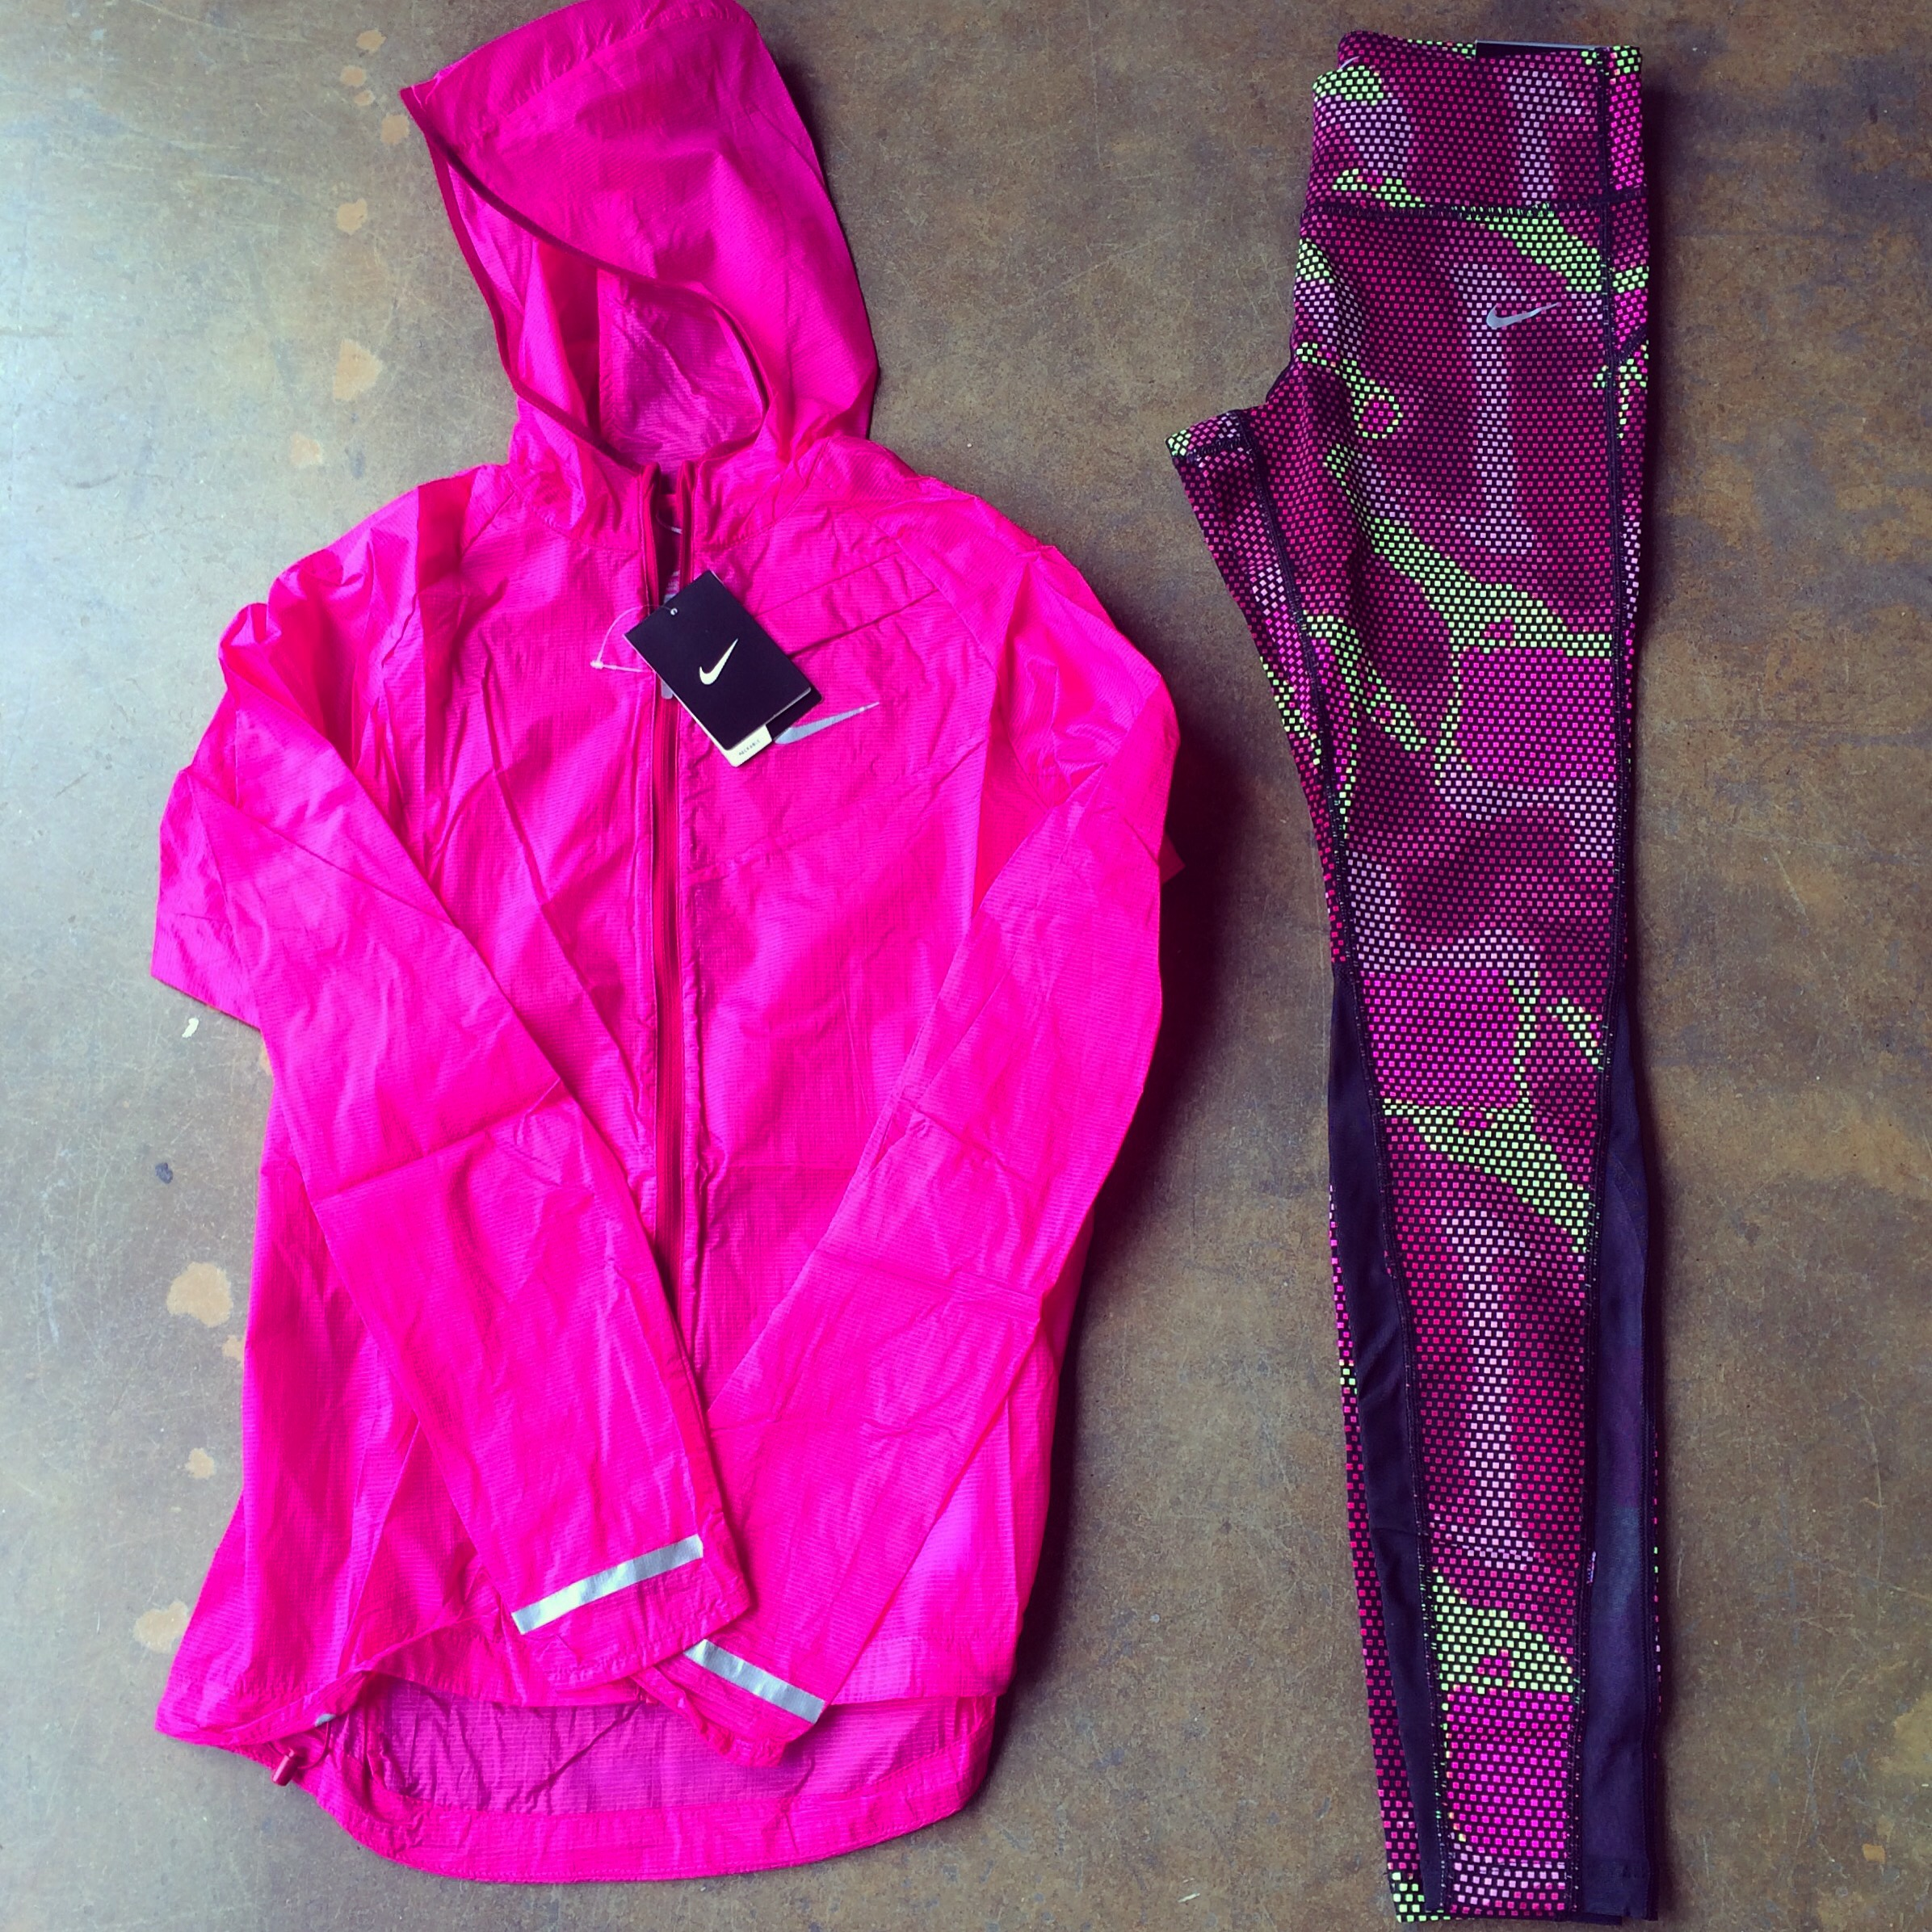 669fe07919f6 Impossibility Light Jacket - ultra lightweight nylon fabric - only 3  ounces!